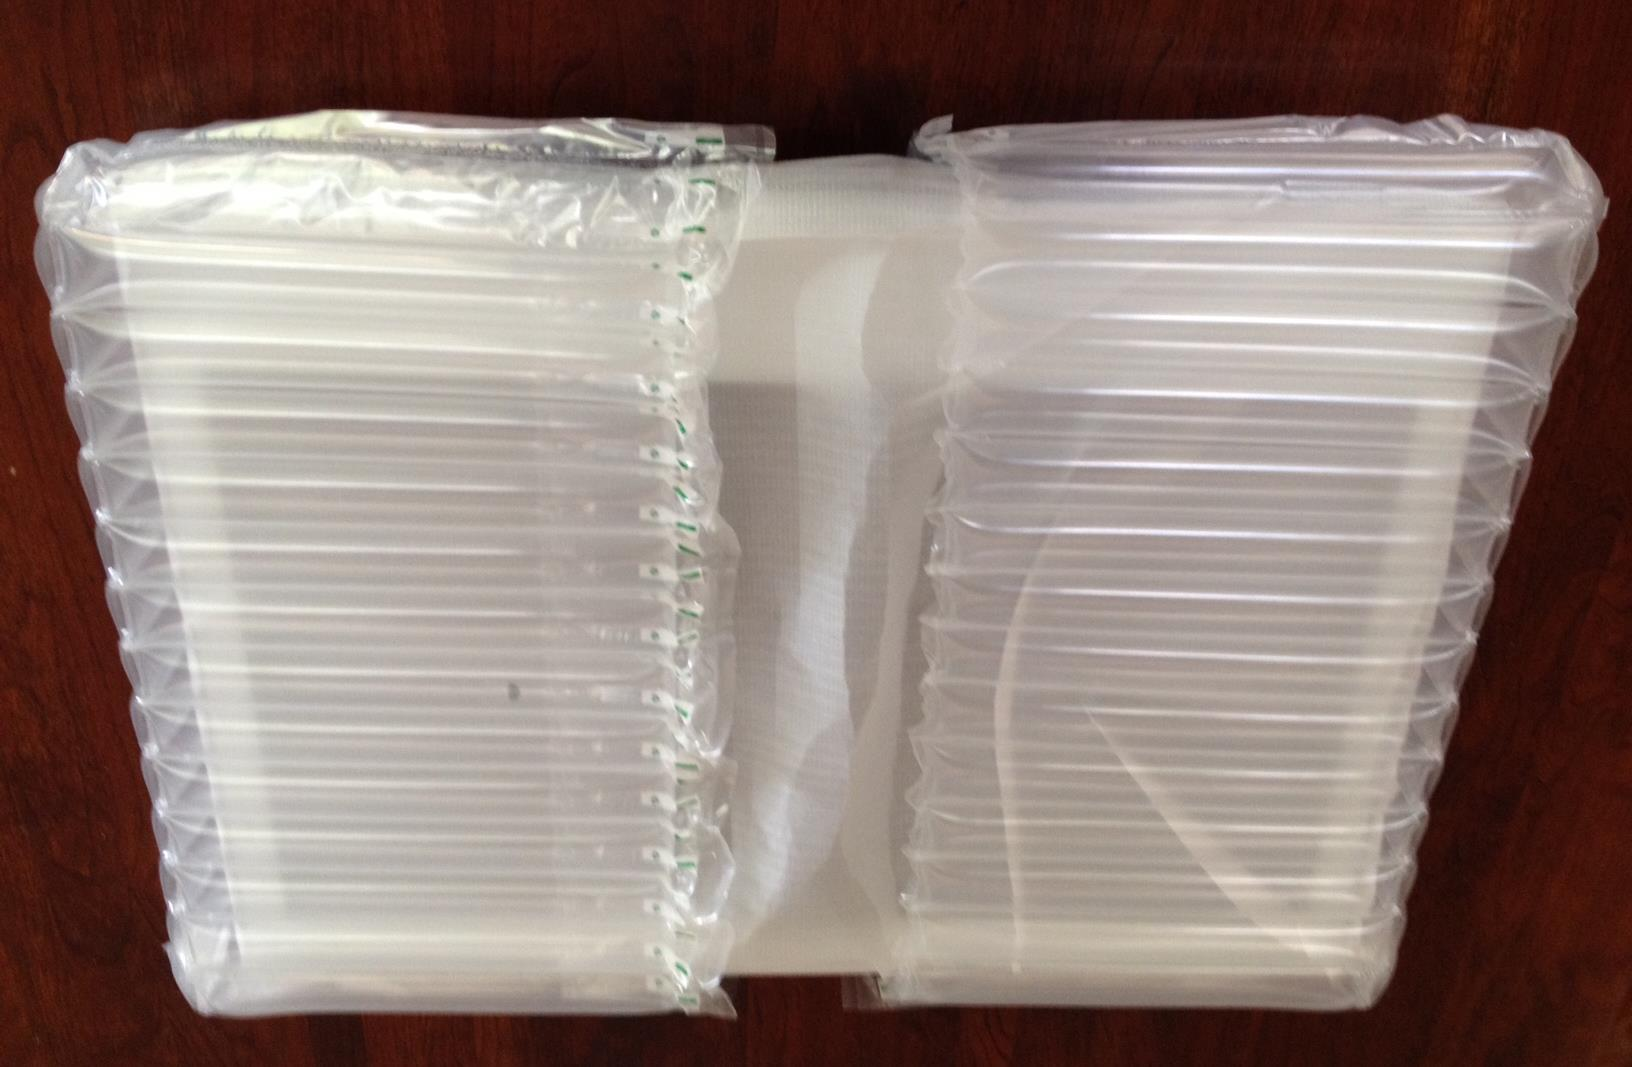 Packaging material is clean and compact, much preferable to styrofoam.